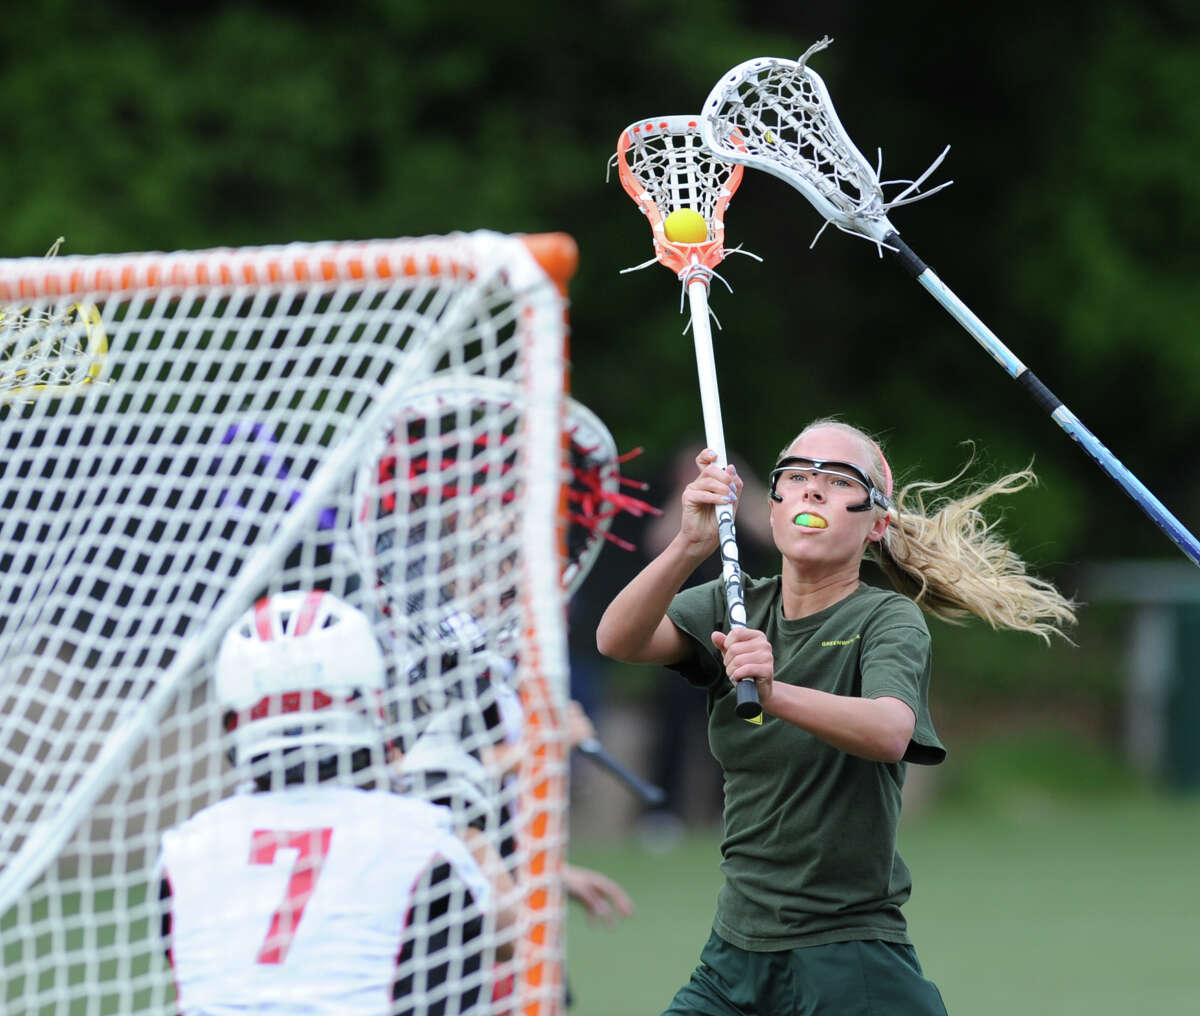 Emily Conway of Greenwich Academy attempts to line up a shot during girls high school lacrosse match between Rye High School and Greenwich Academy at Greenwich Academy, Saturday afternoon, May 5, 2012. Conway missed on her shot attempt as Rye went on to defeat GA, 12-11.